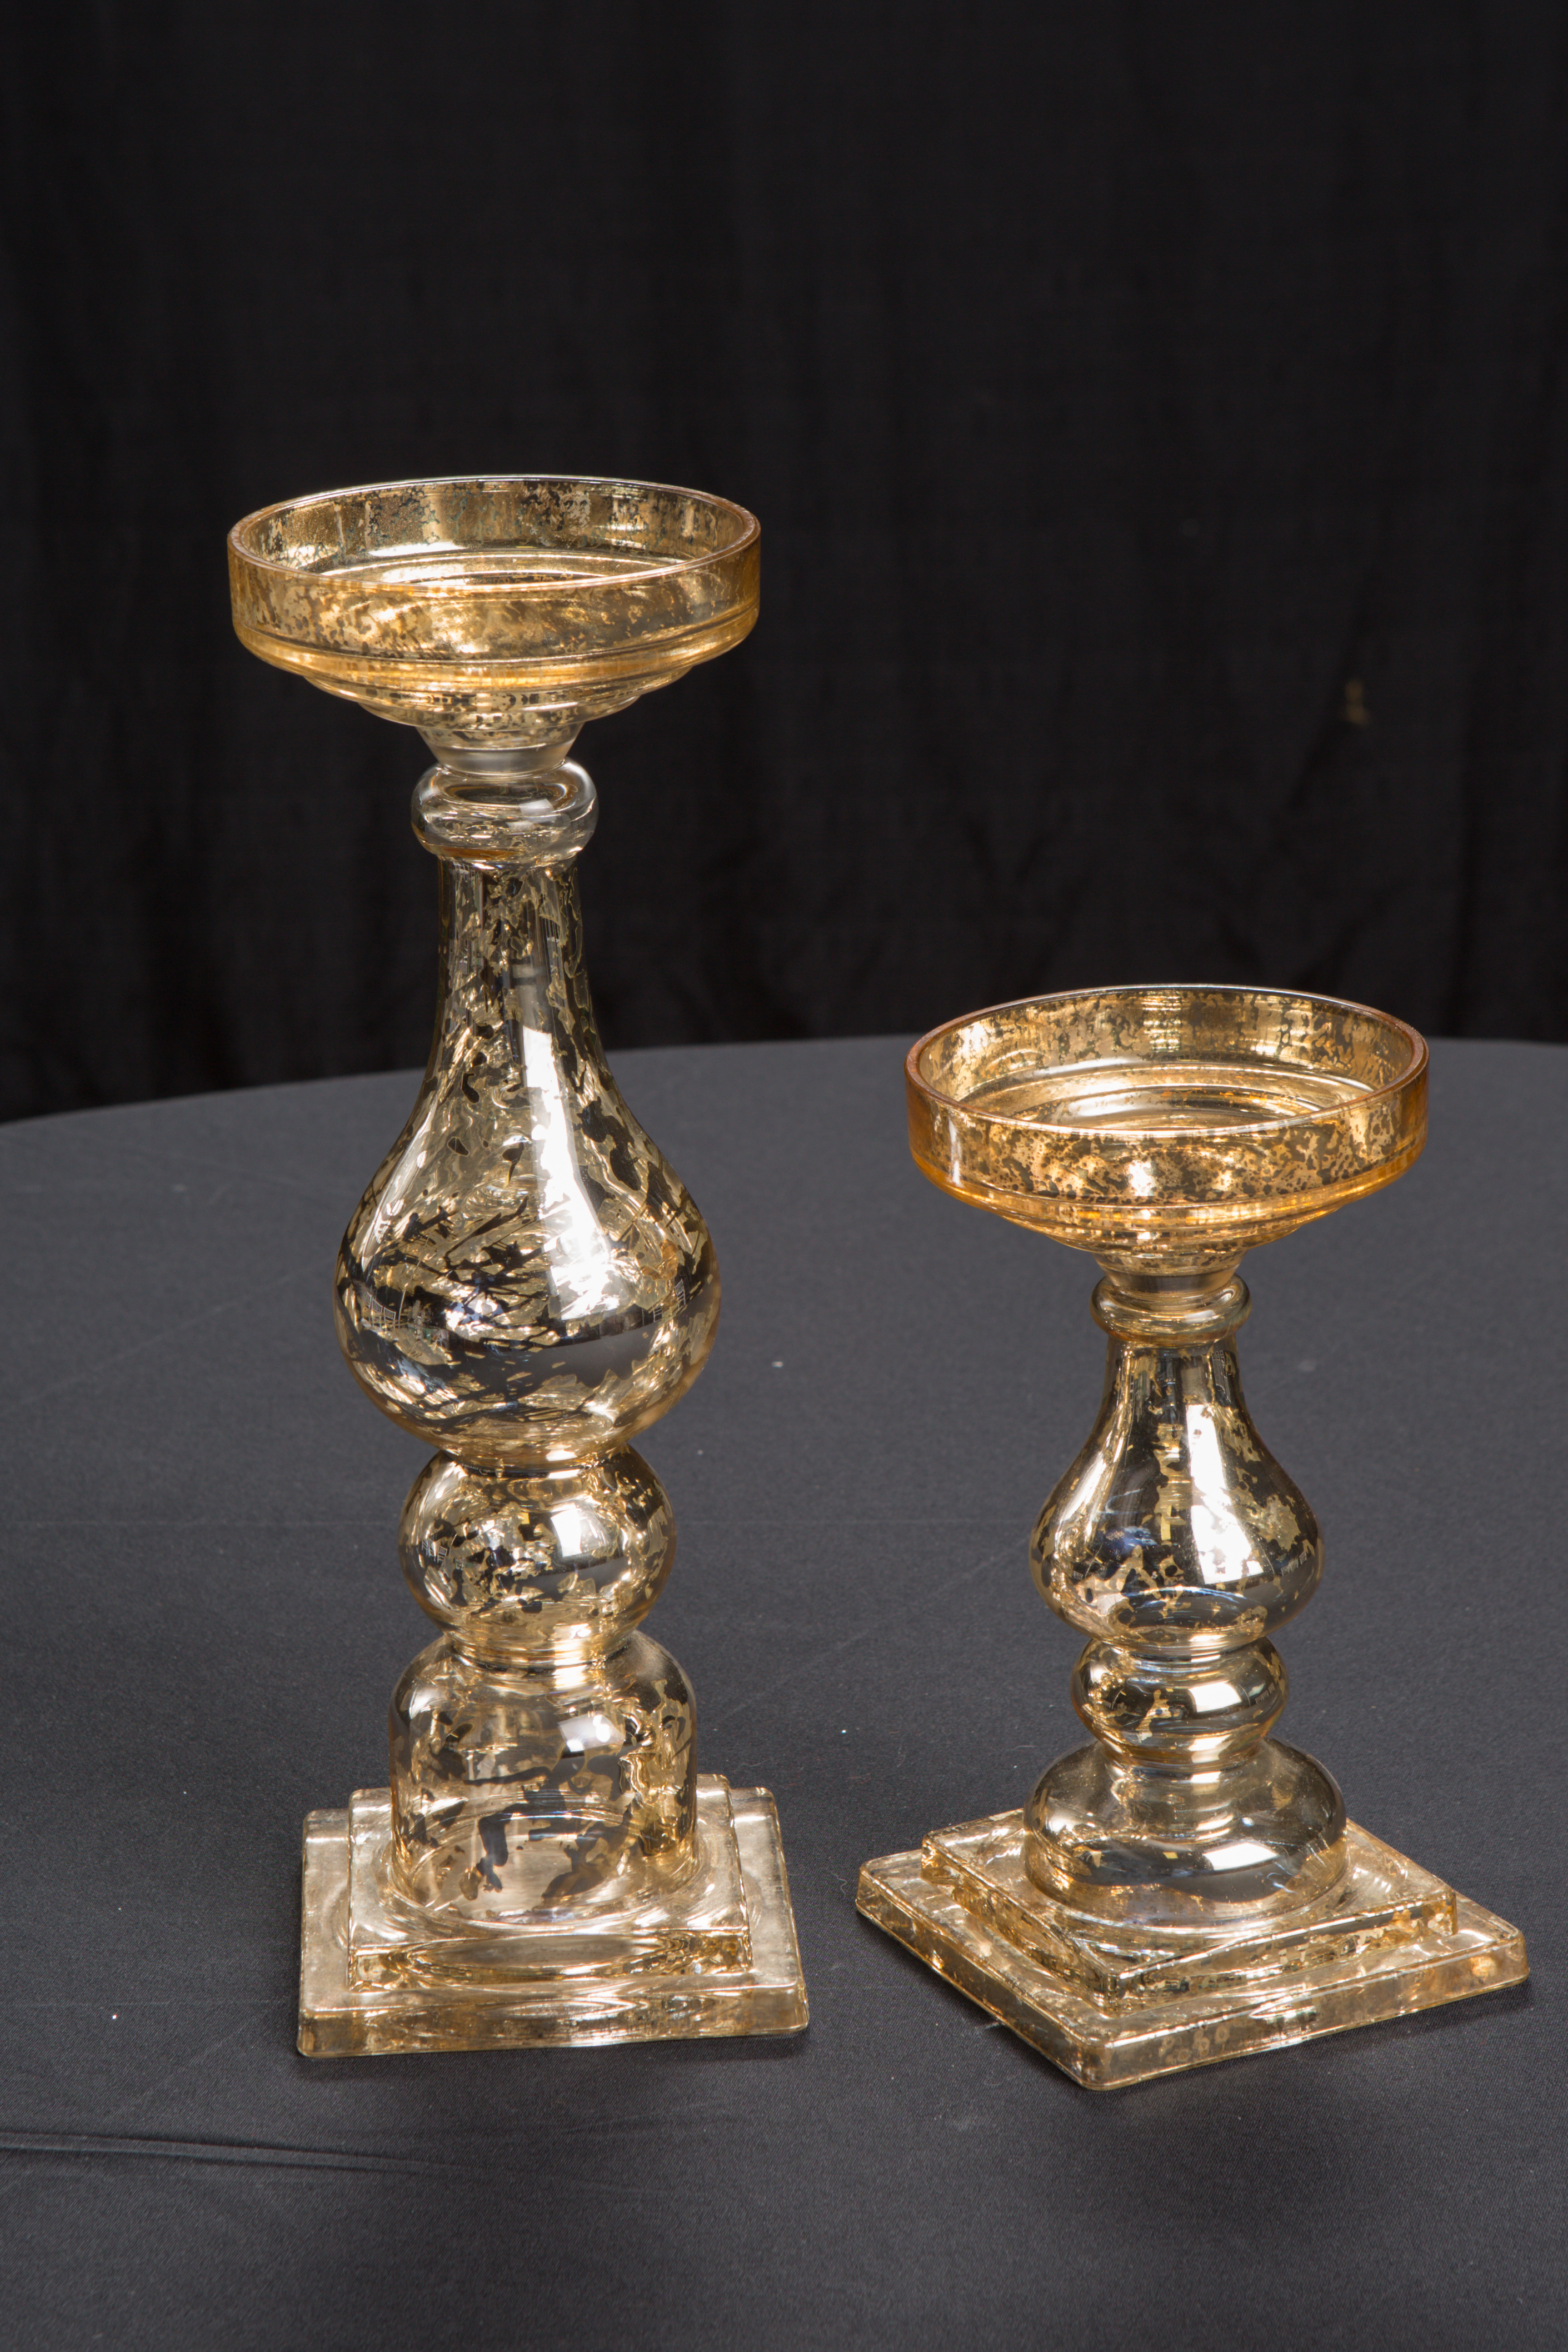 Antique Candlesticks